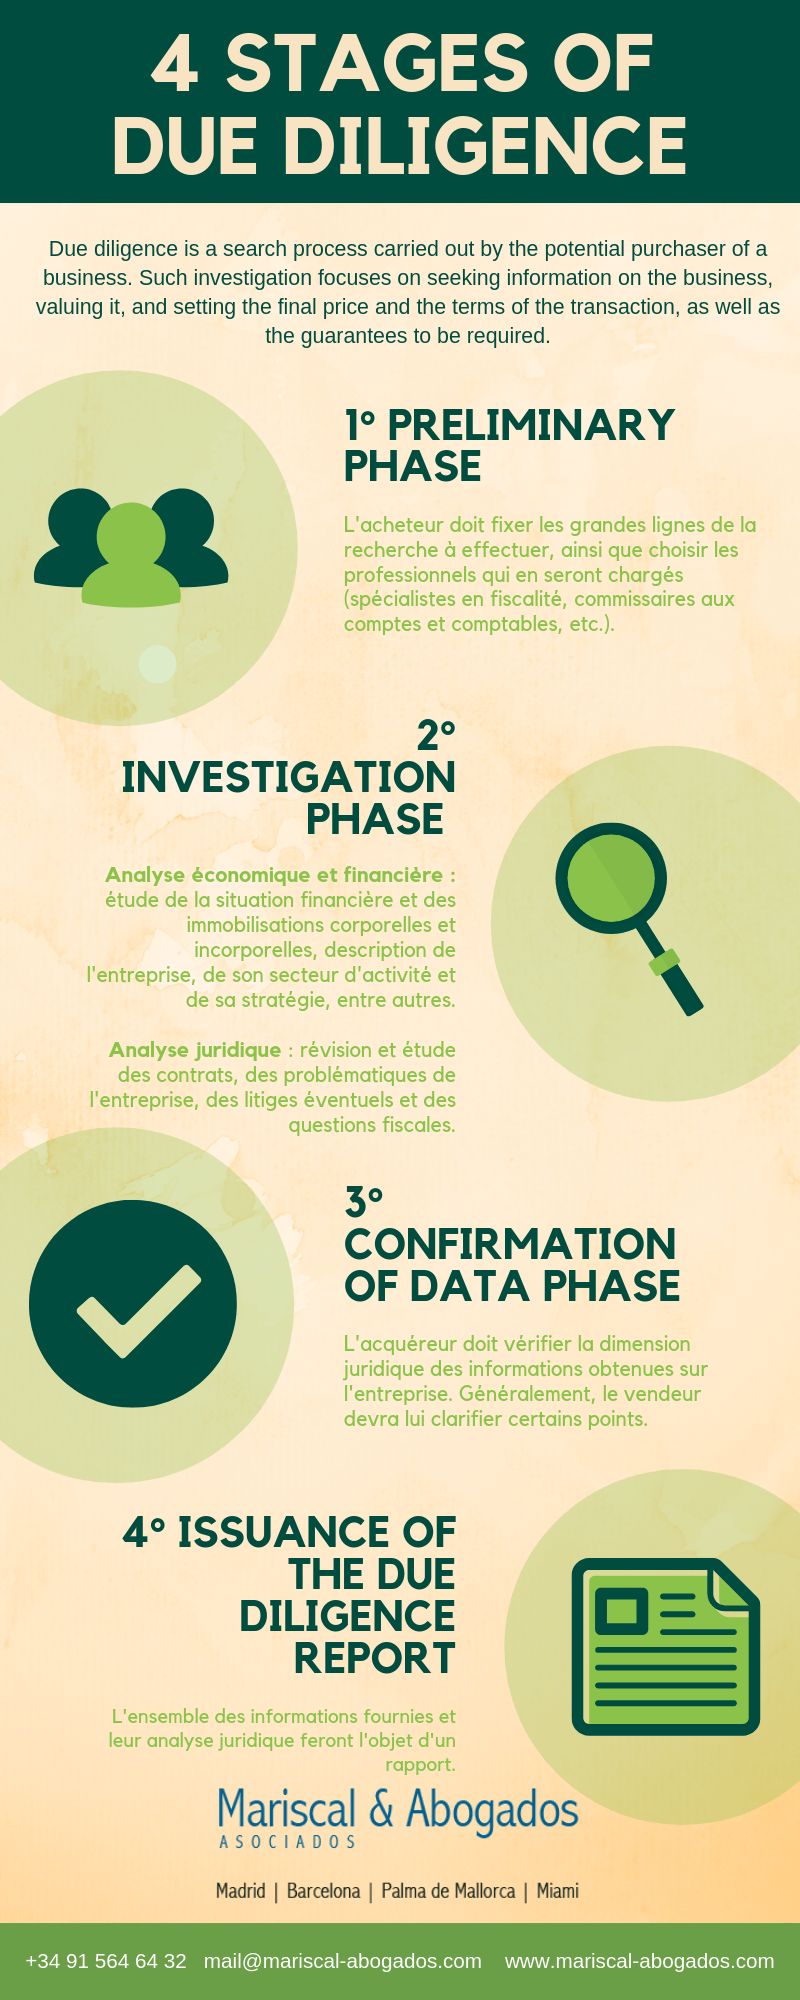 28 2015 4 stages of due diligence